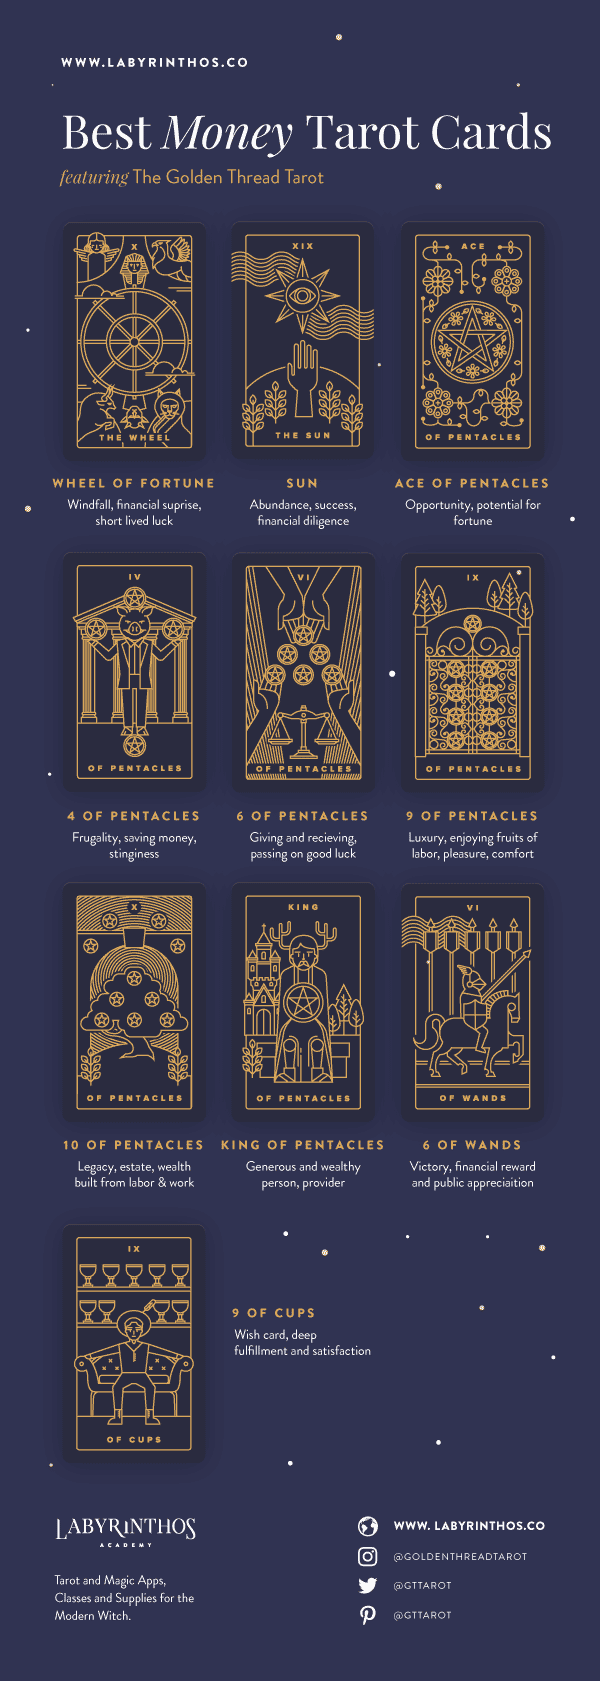 Best Money Tarot Cards to Get in a Tarot Reading - Infographic